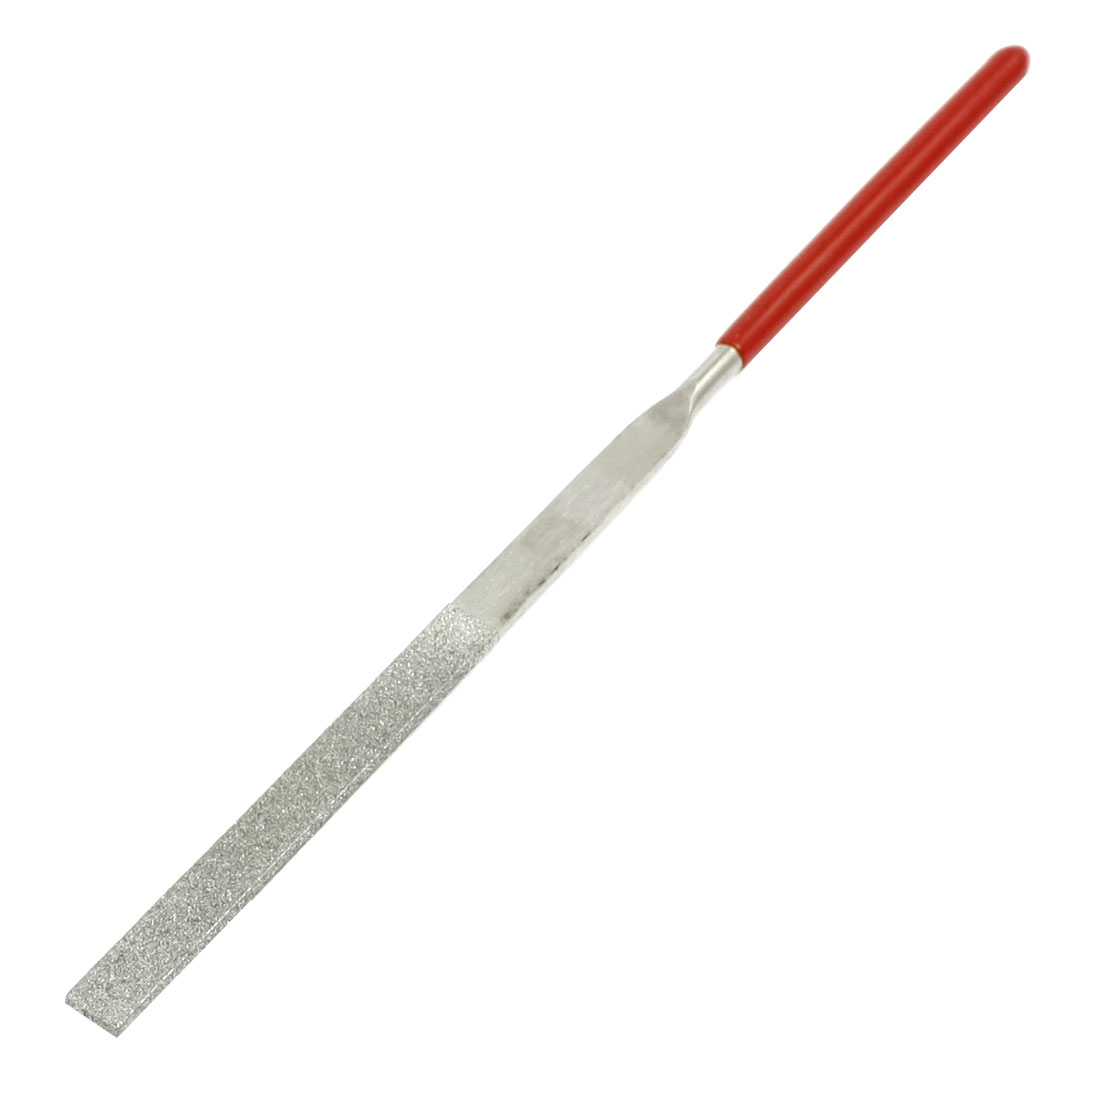 3mm x 140mm Glass Stone Handle Tool Flat Diamond Files Red Silver Tone